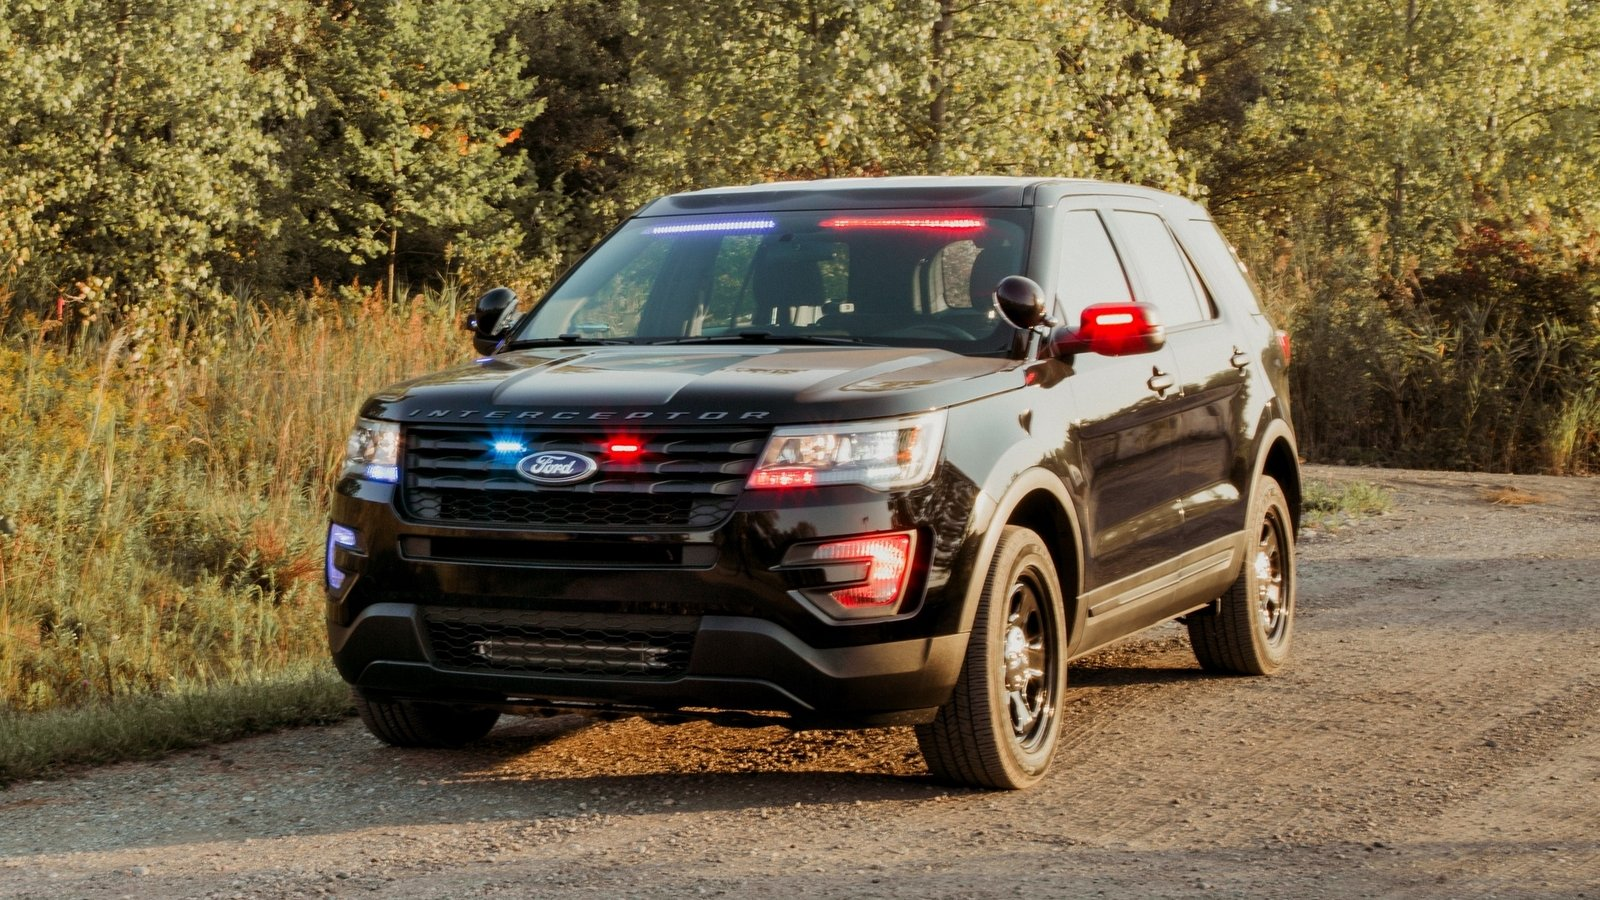 Ford Police Interceptor Utility Gets New Rear Spoiler